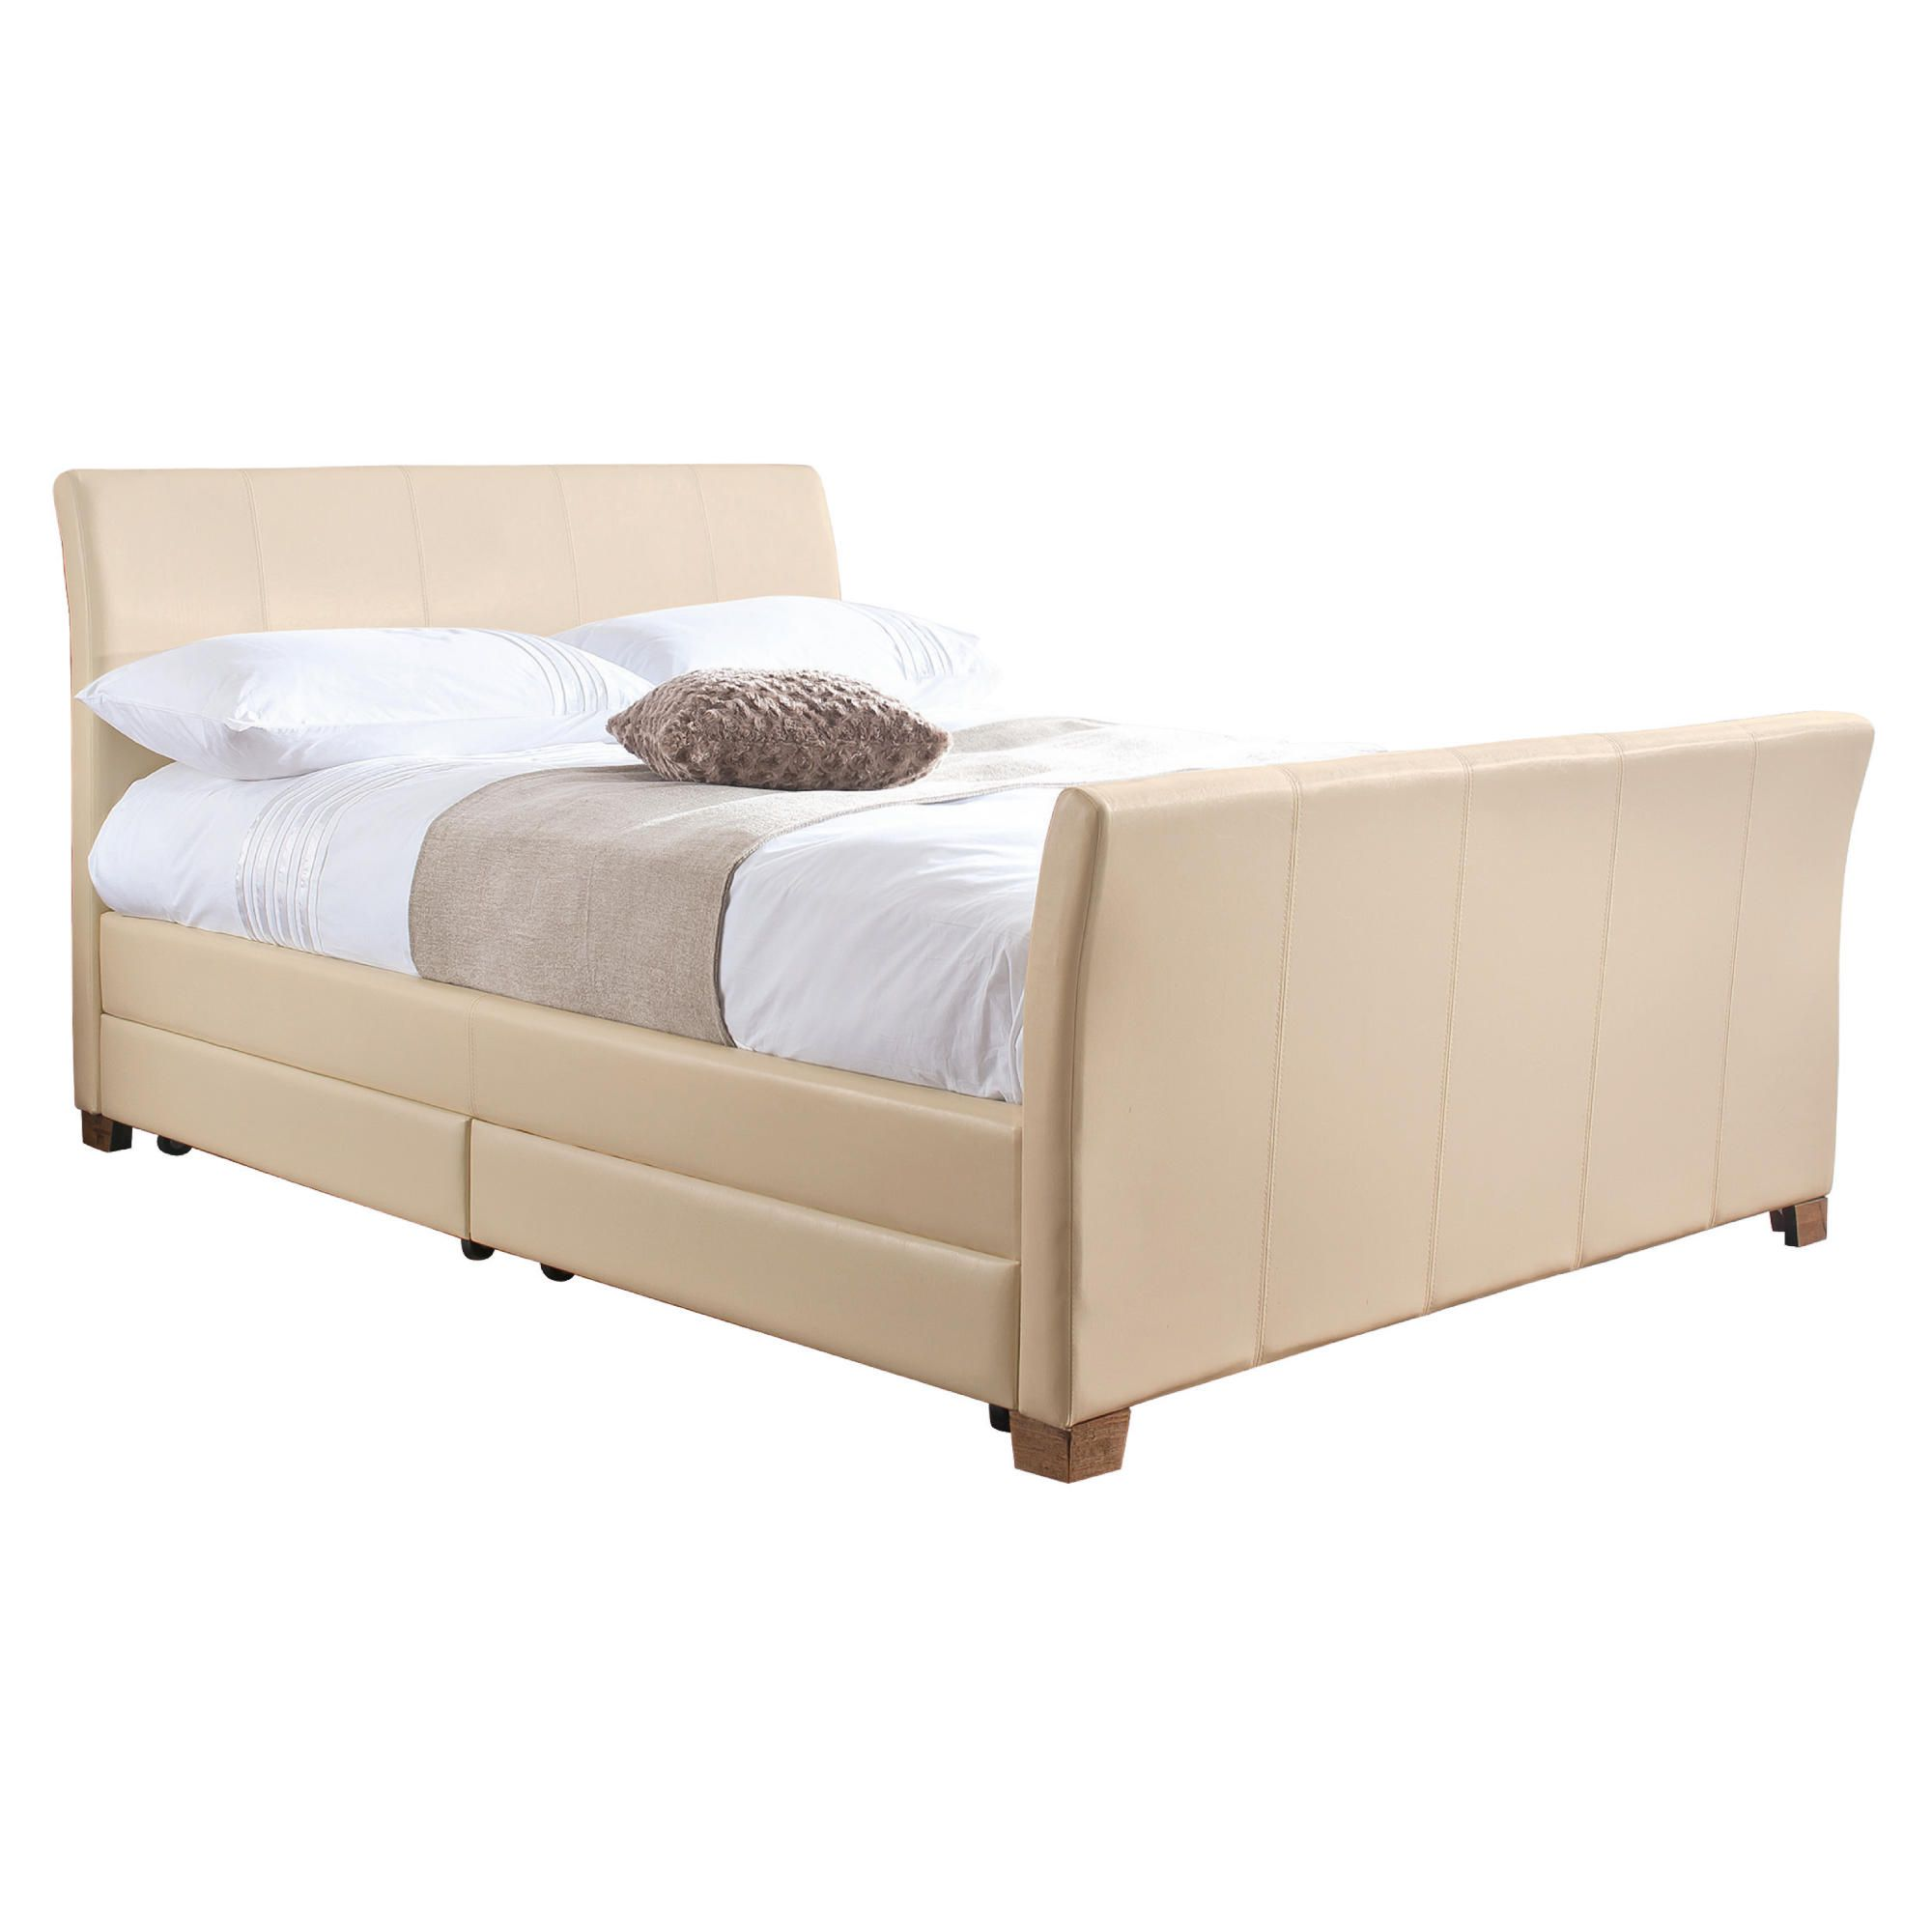 Rayne Double Faux Leather Bed Frame with 4 Drawers, Cream at Tesco Direct